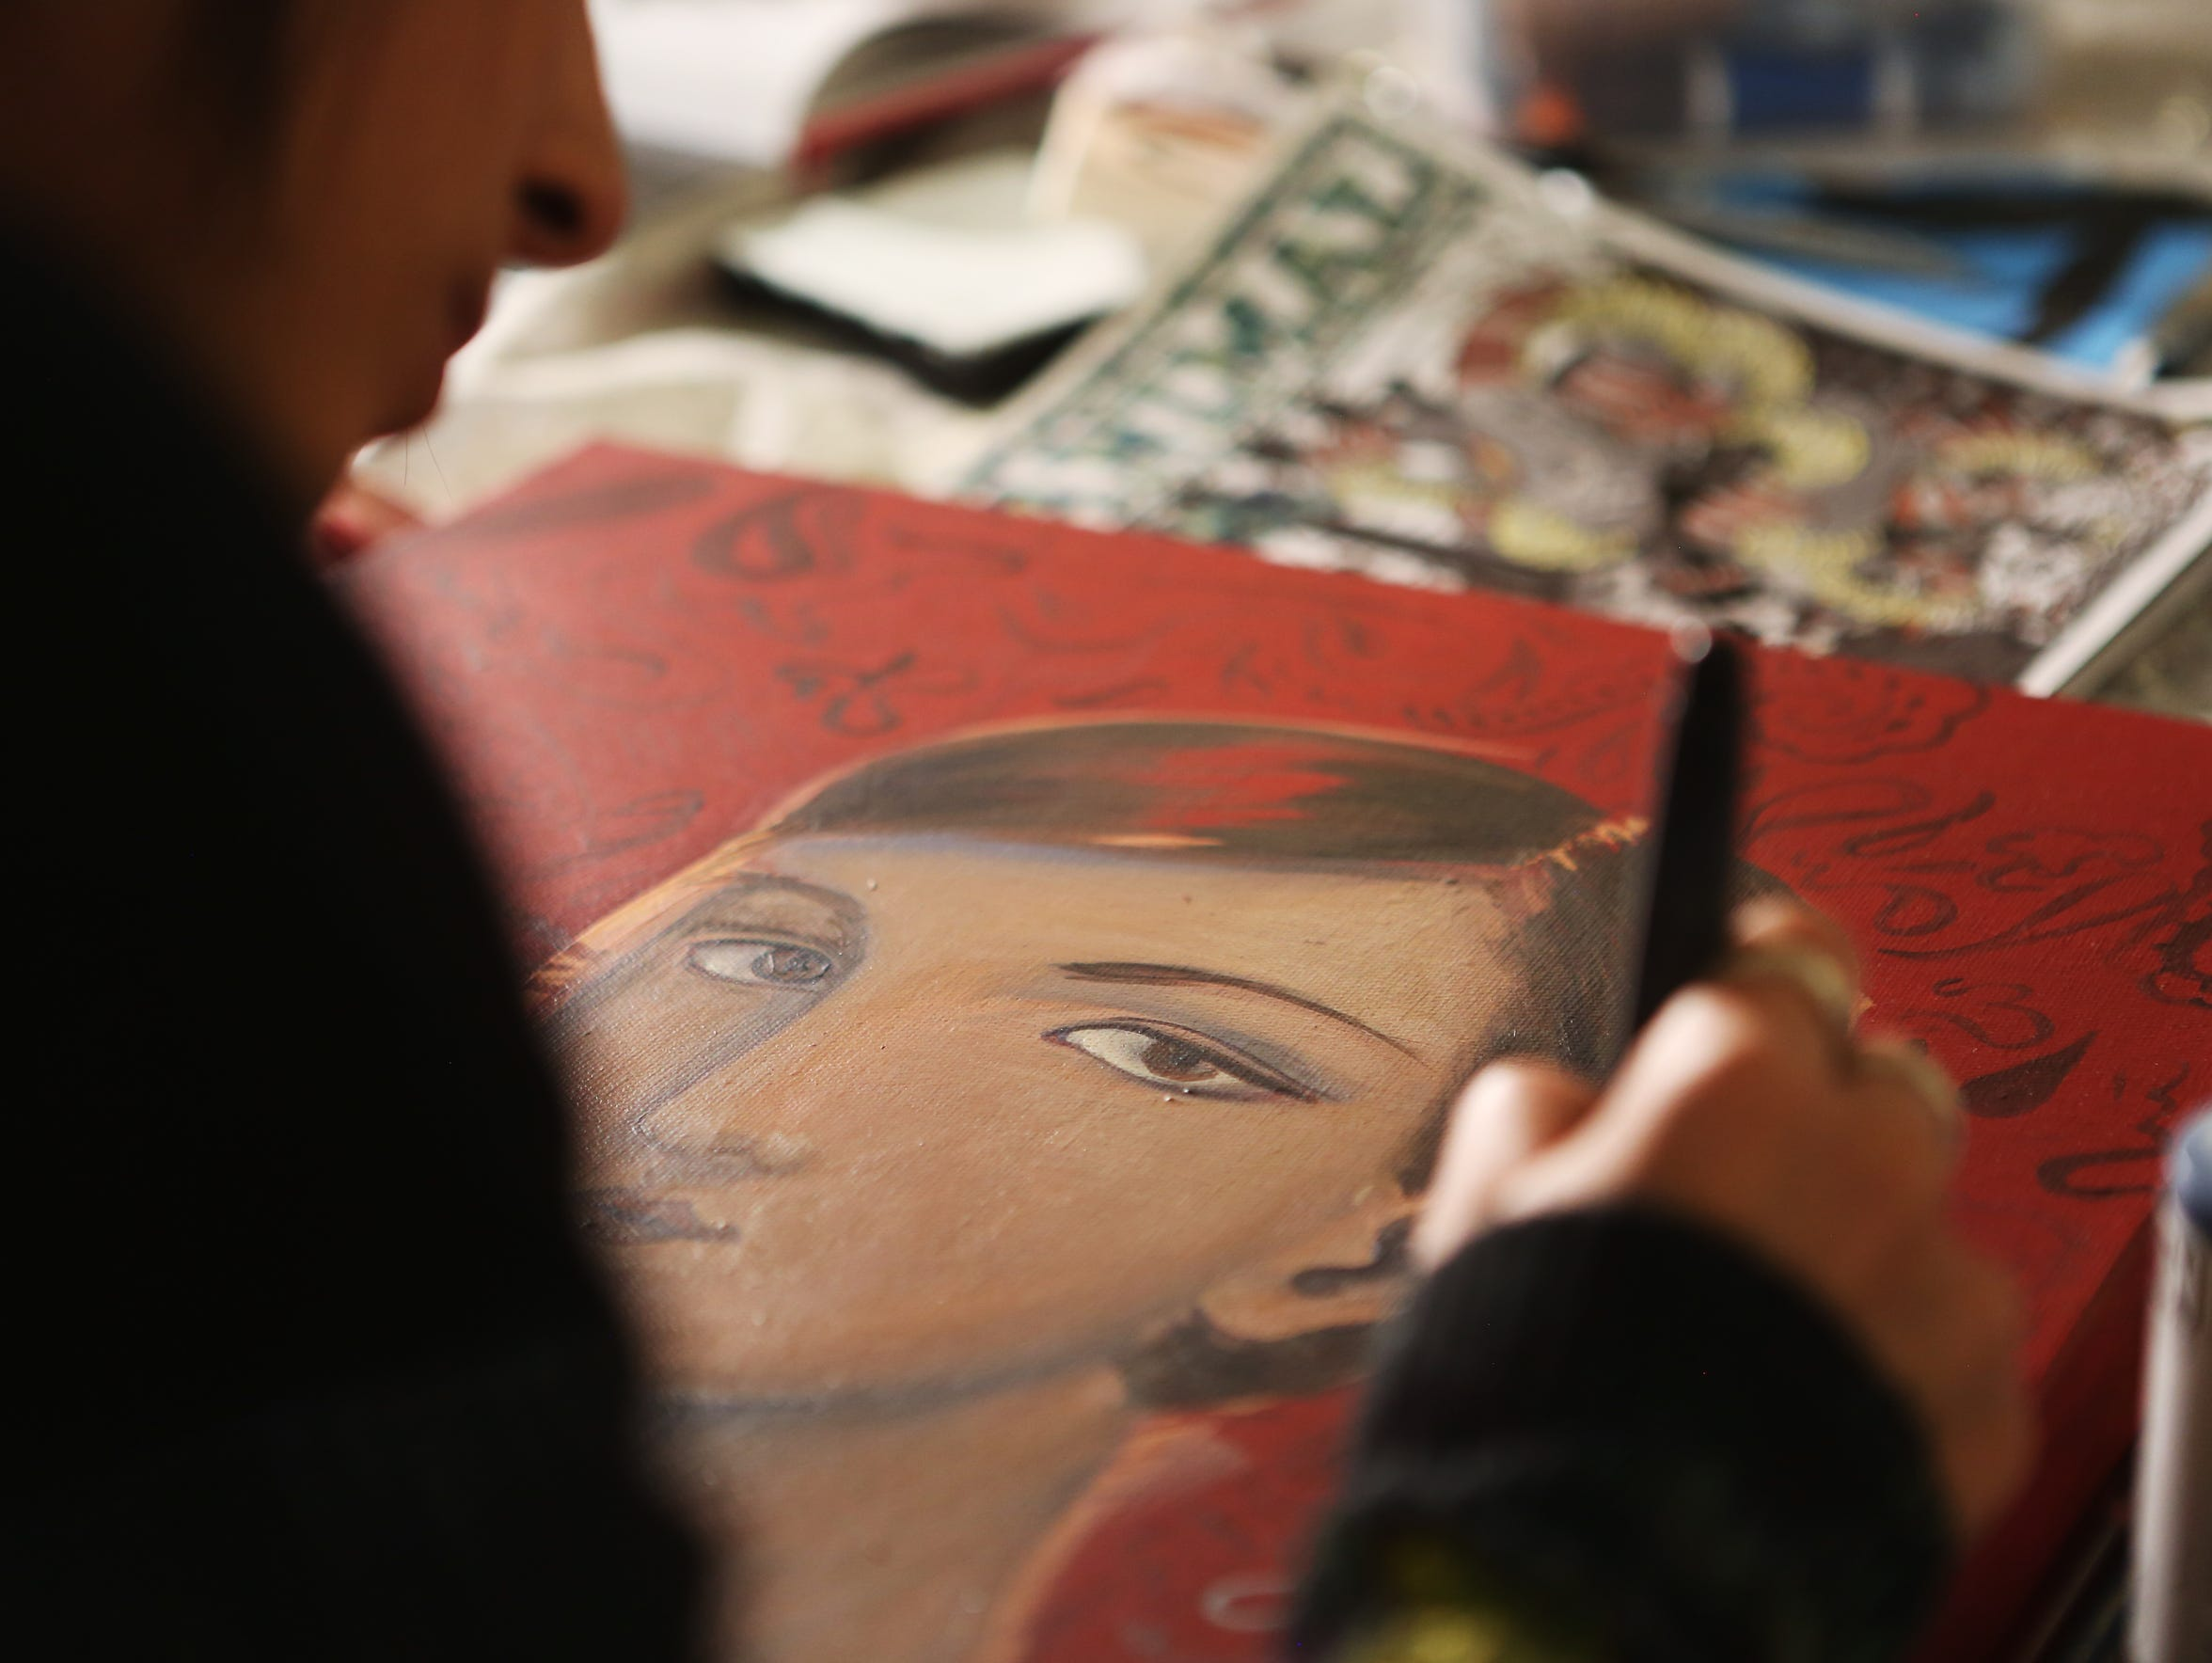 Artist Sofia Enriquez works on a portrait at MAKE in